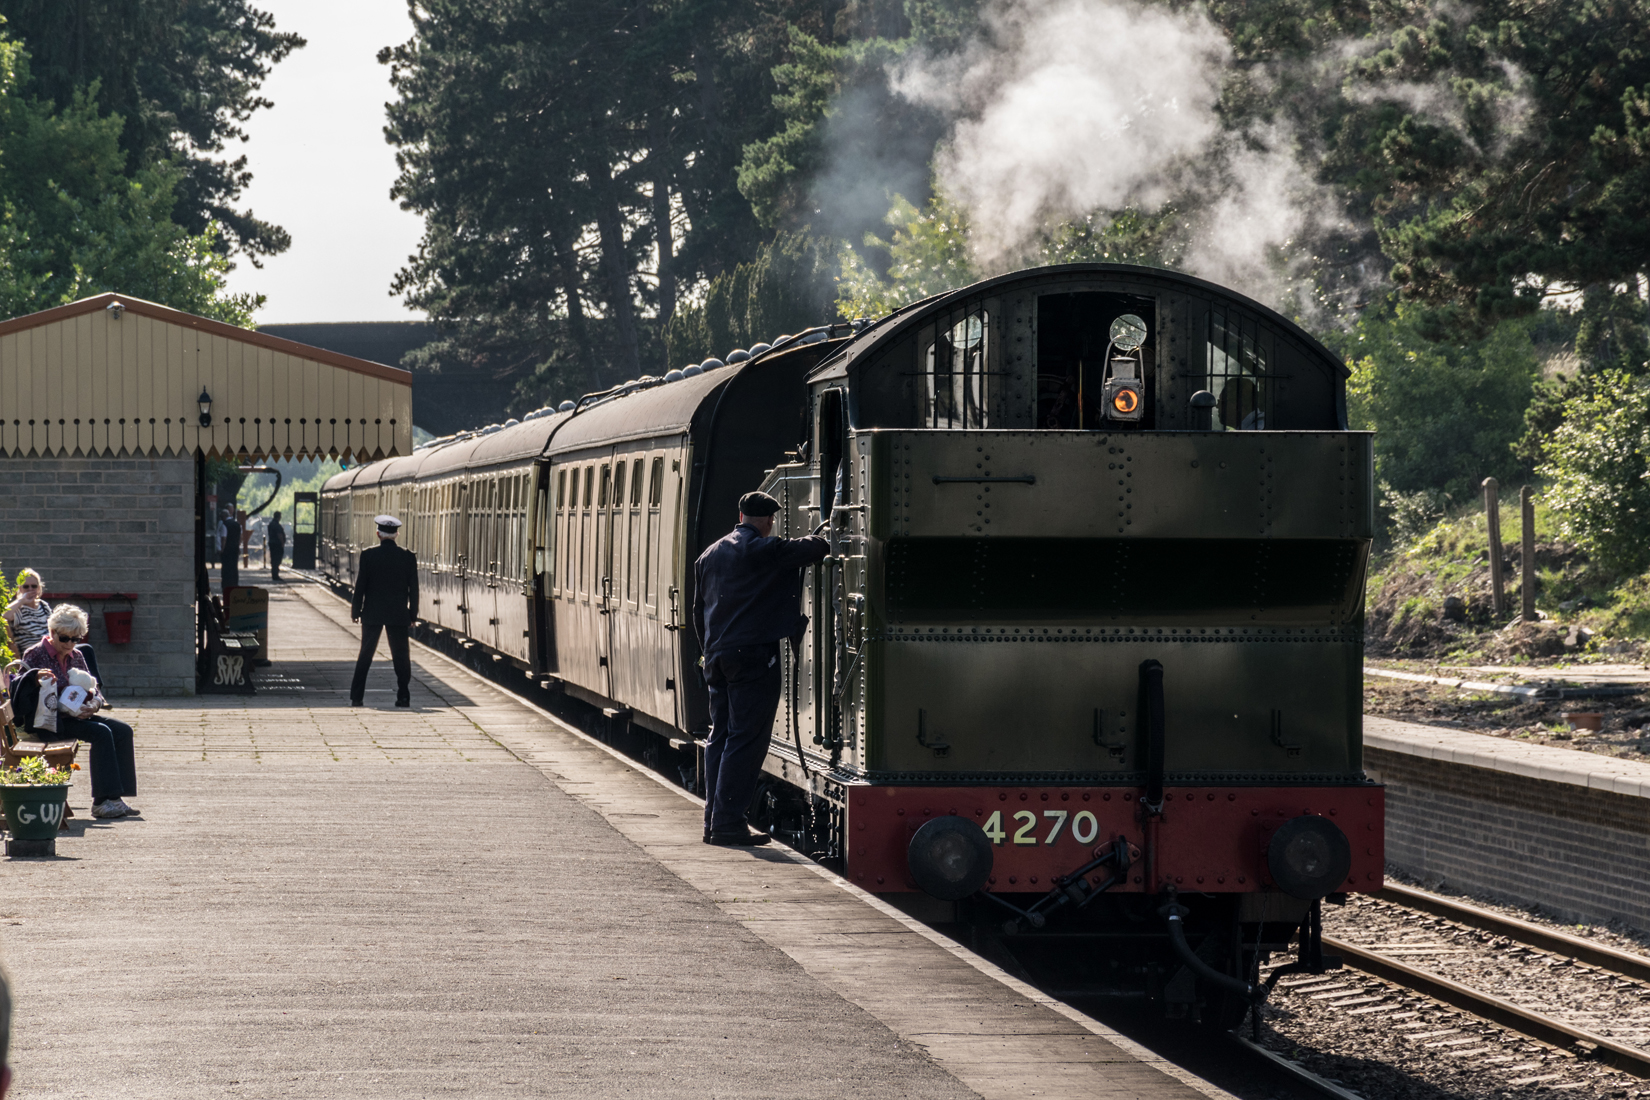 4270 and its train wait for the guard's send off